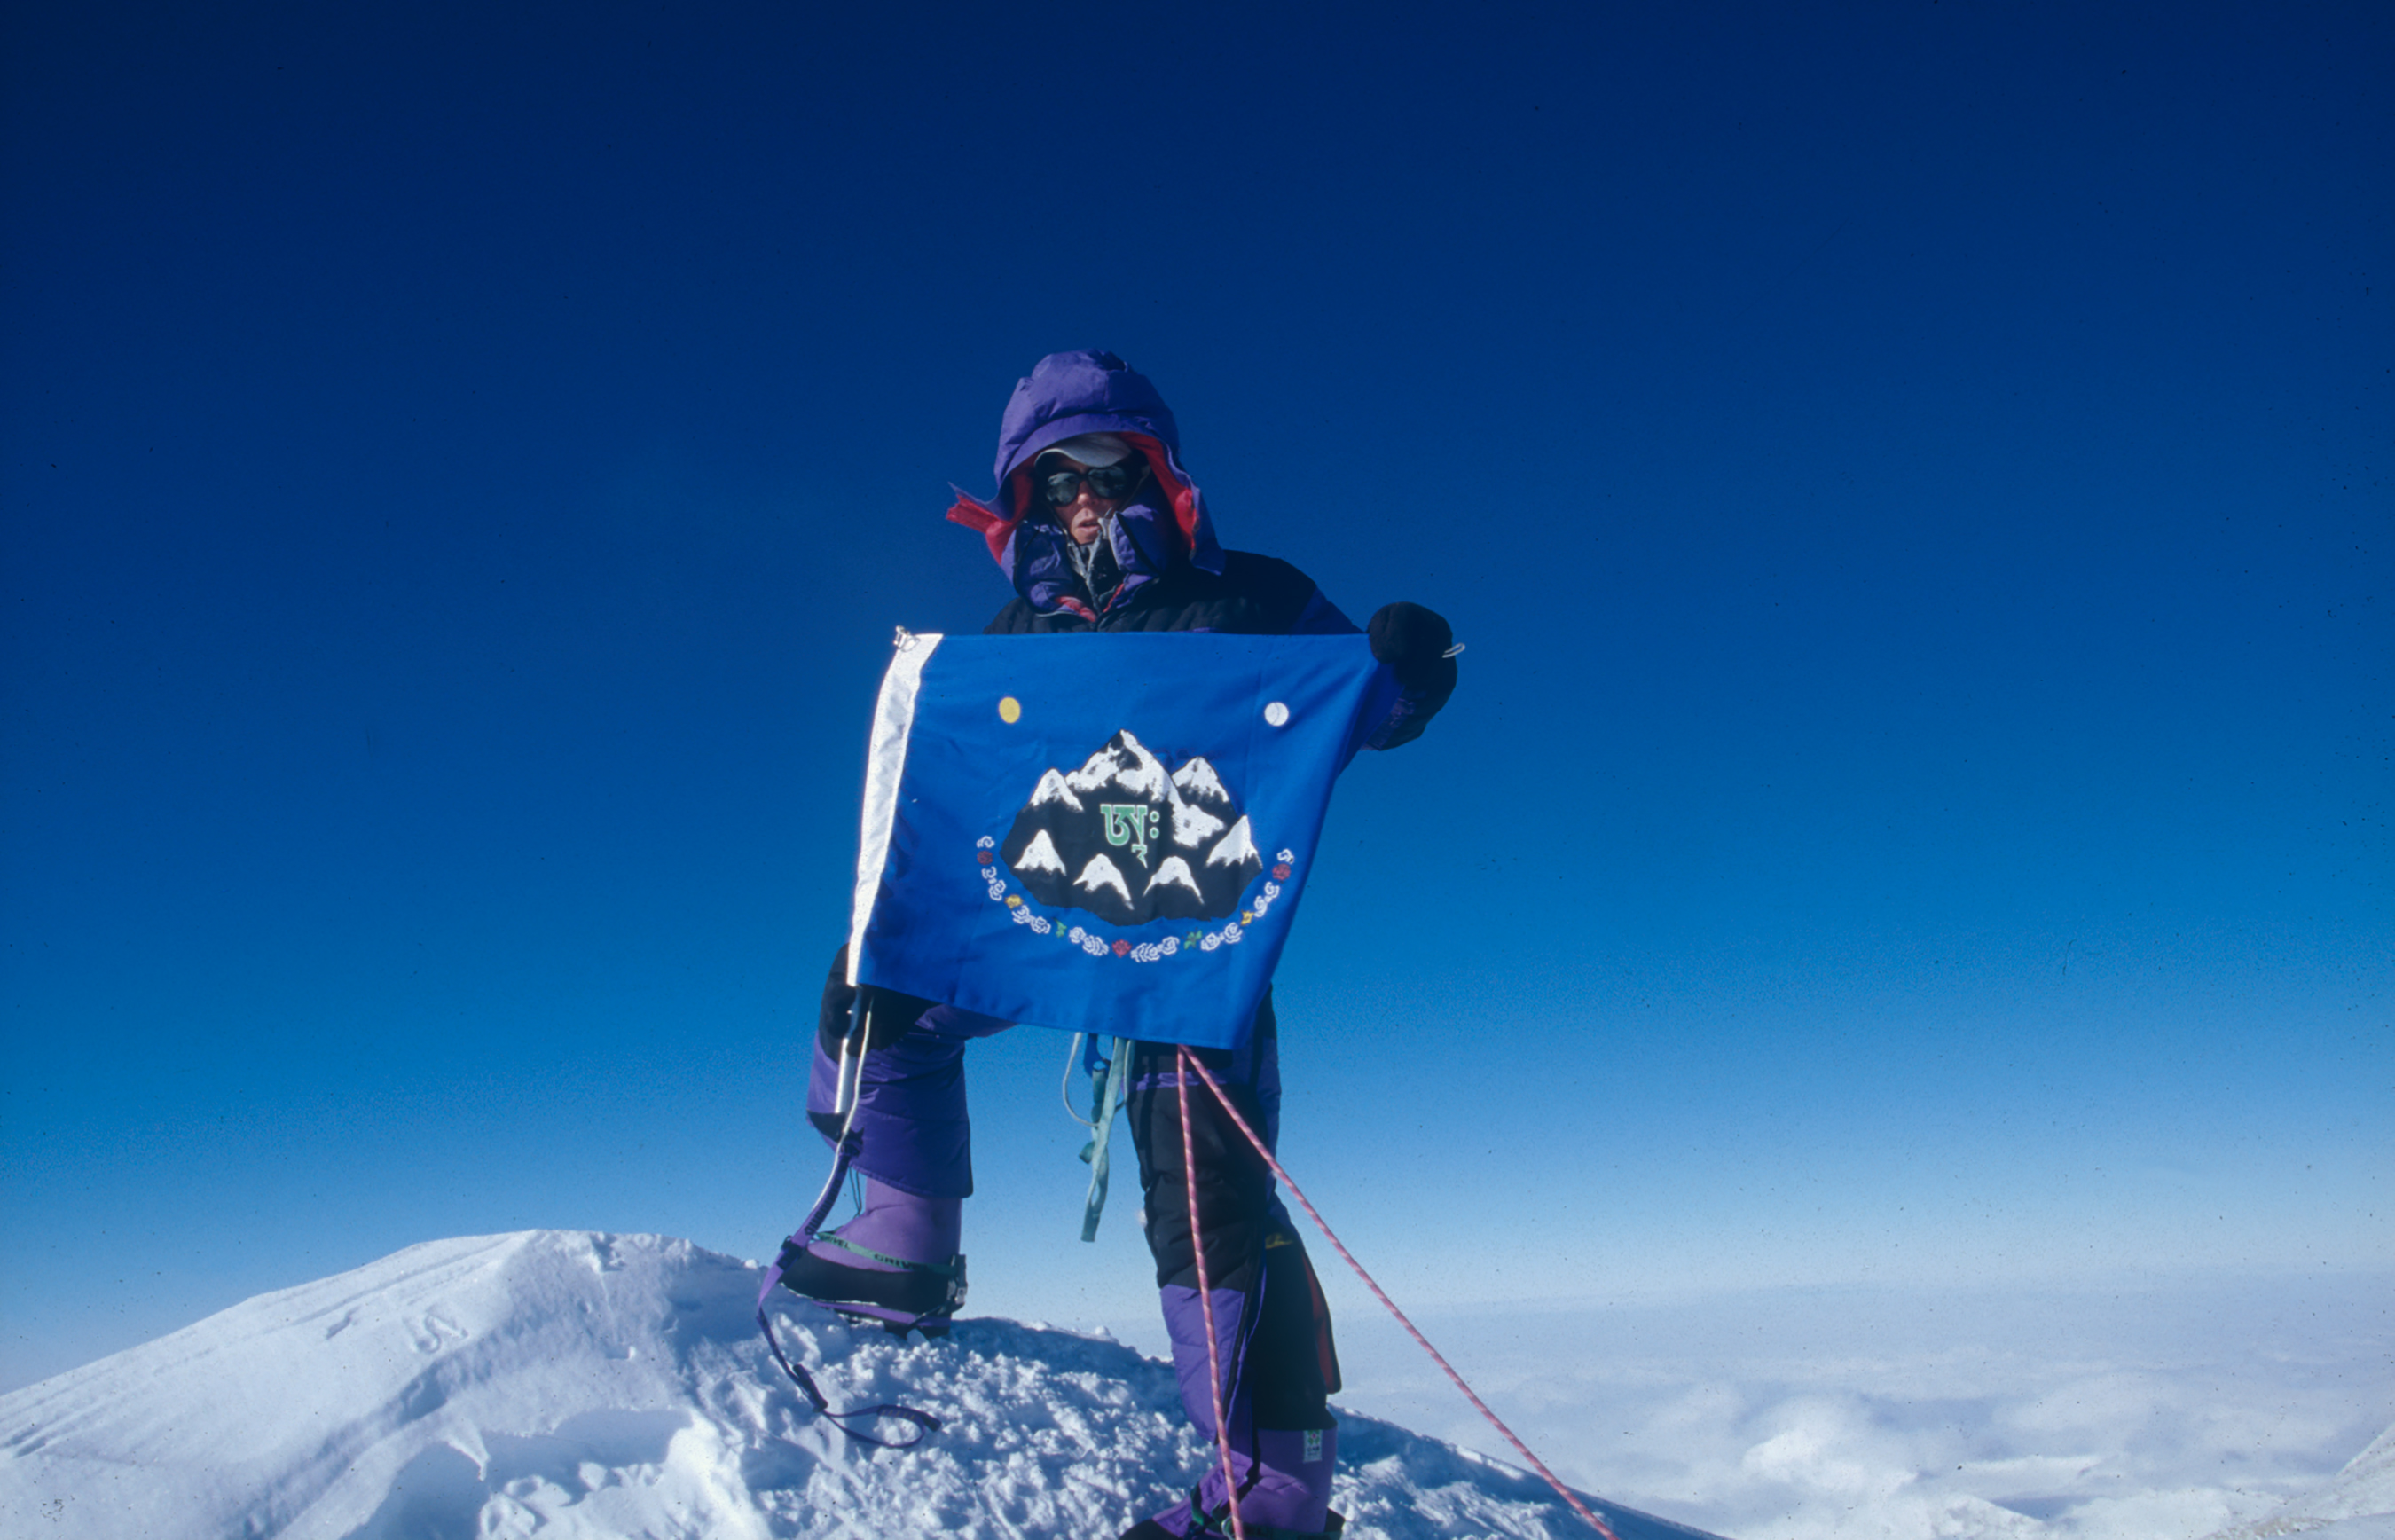 Antarctica, Jeff Shea Completes the Seven Summits Atop Mount Vinson, 1997 (with flag)